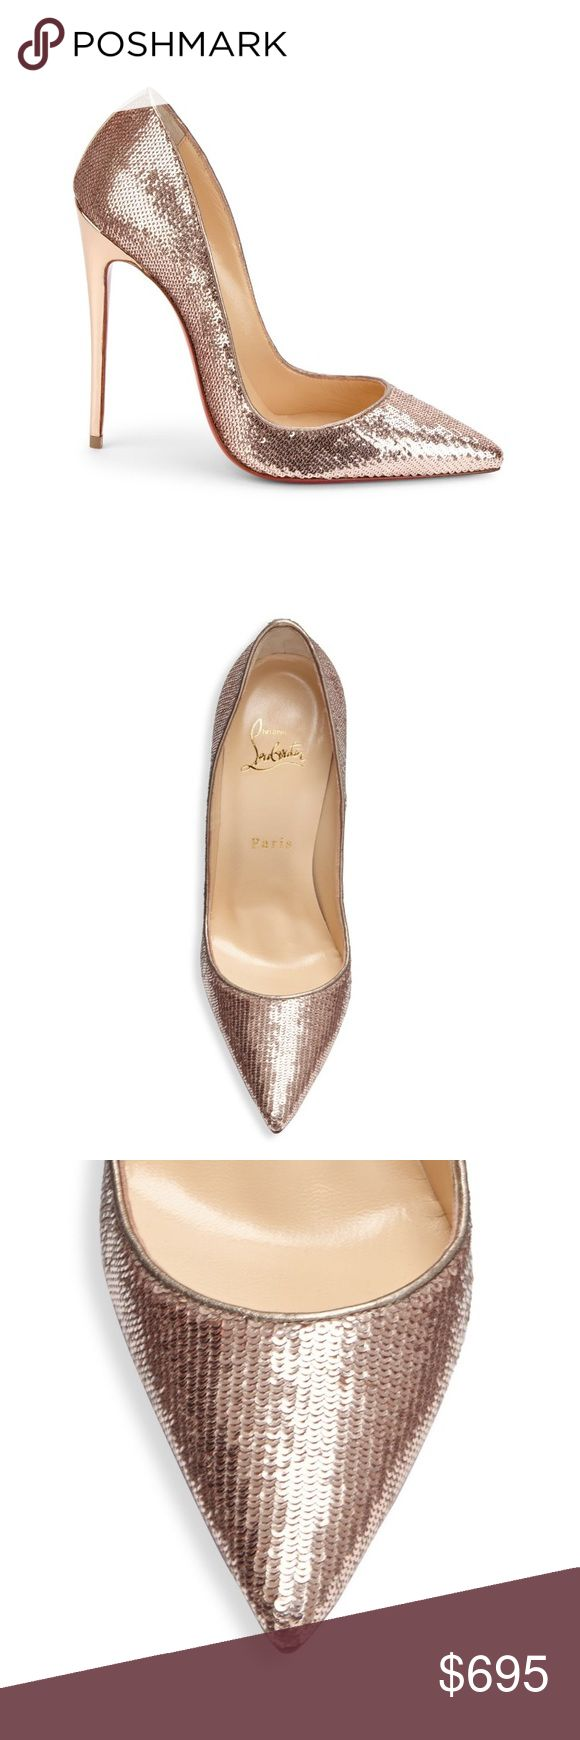 AUTHENTIC Christian Louboutin Kate sequin pumps Christian Louboutin Shoes Heels